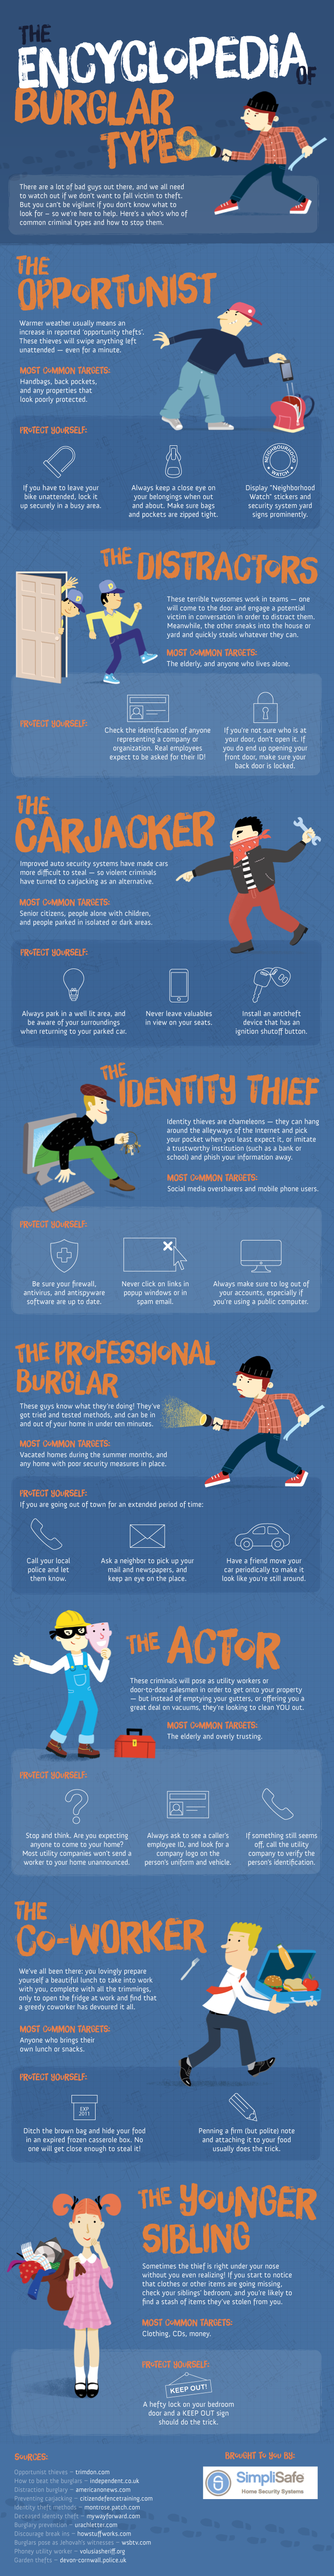 Burglars: The Encyclopedia of Burglar Types